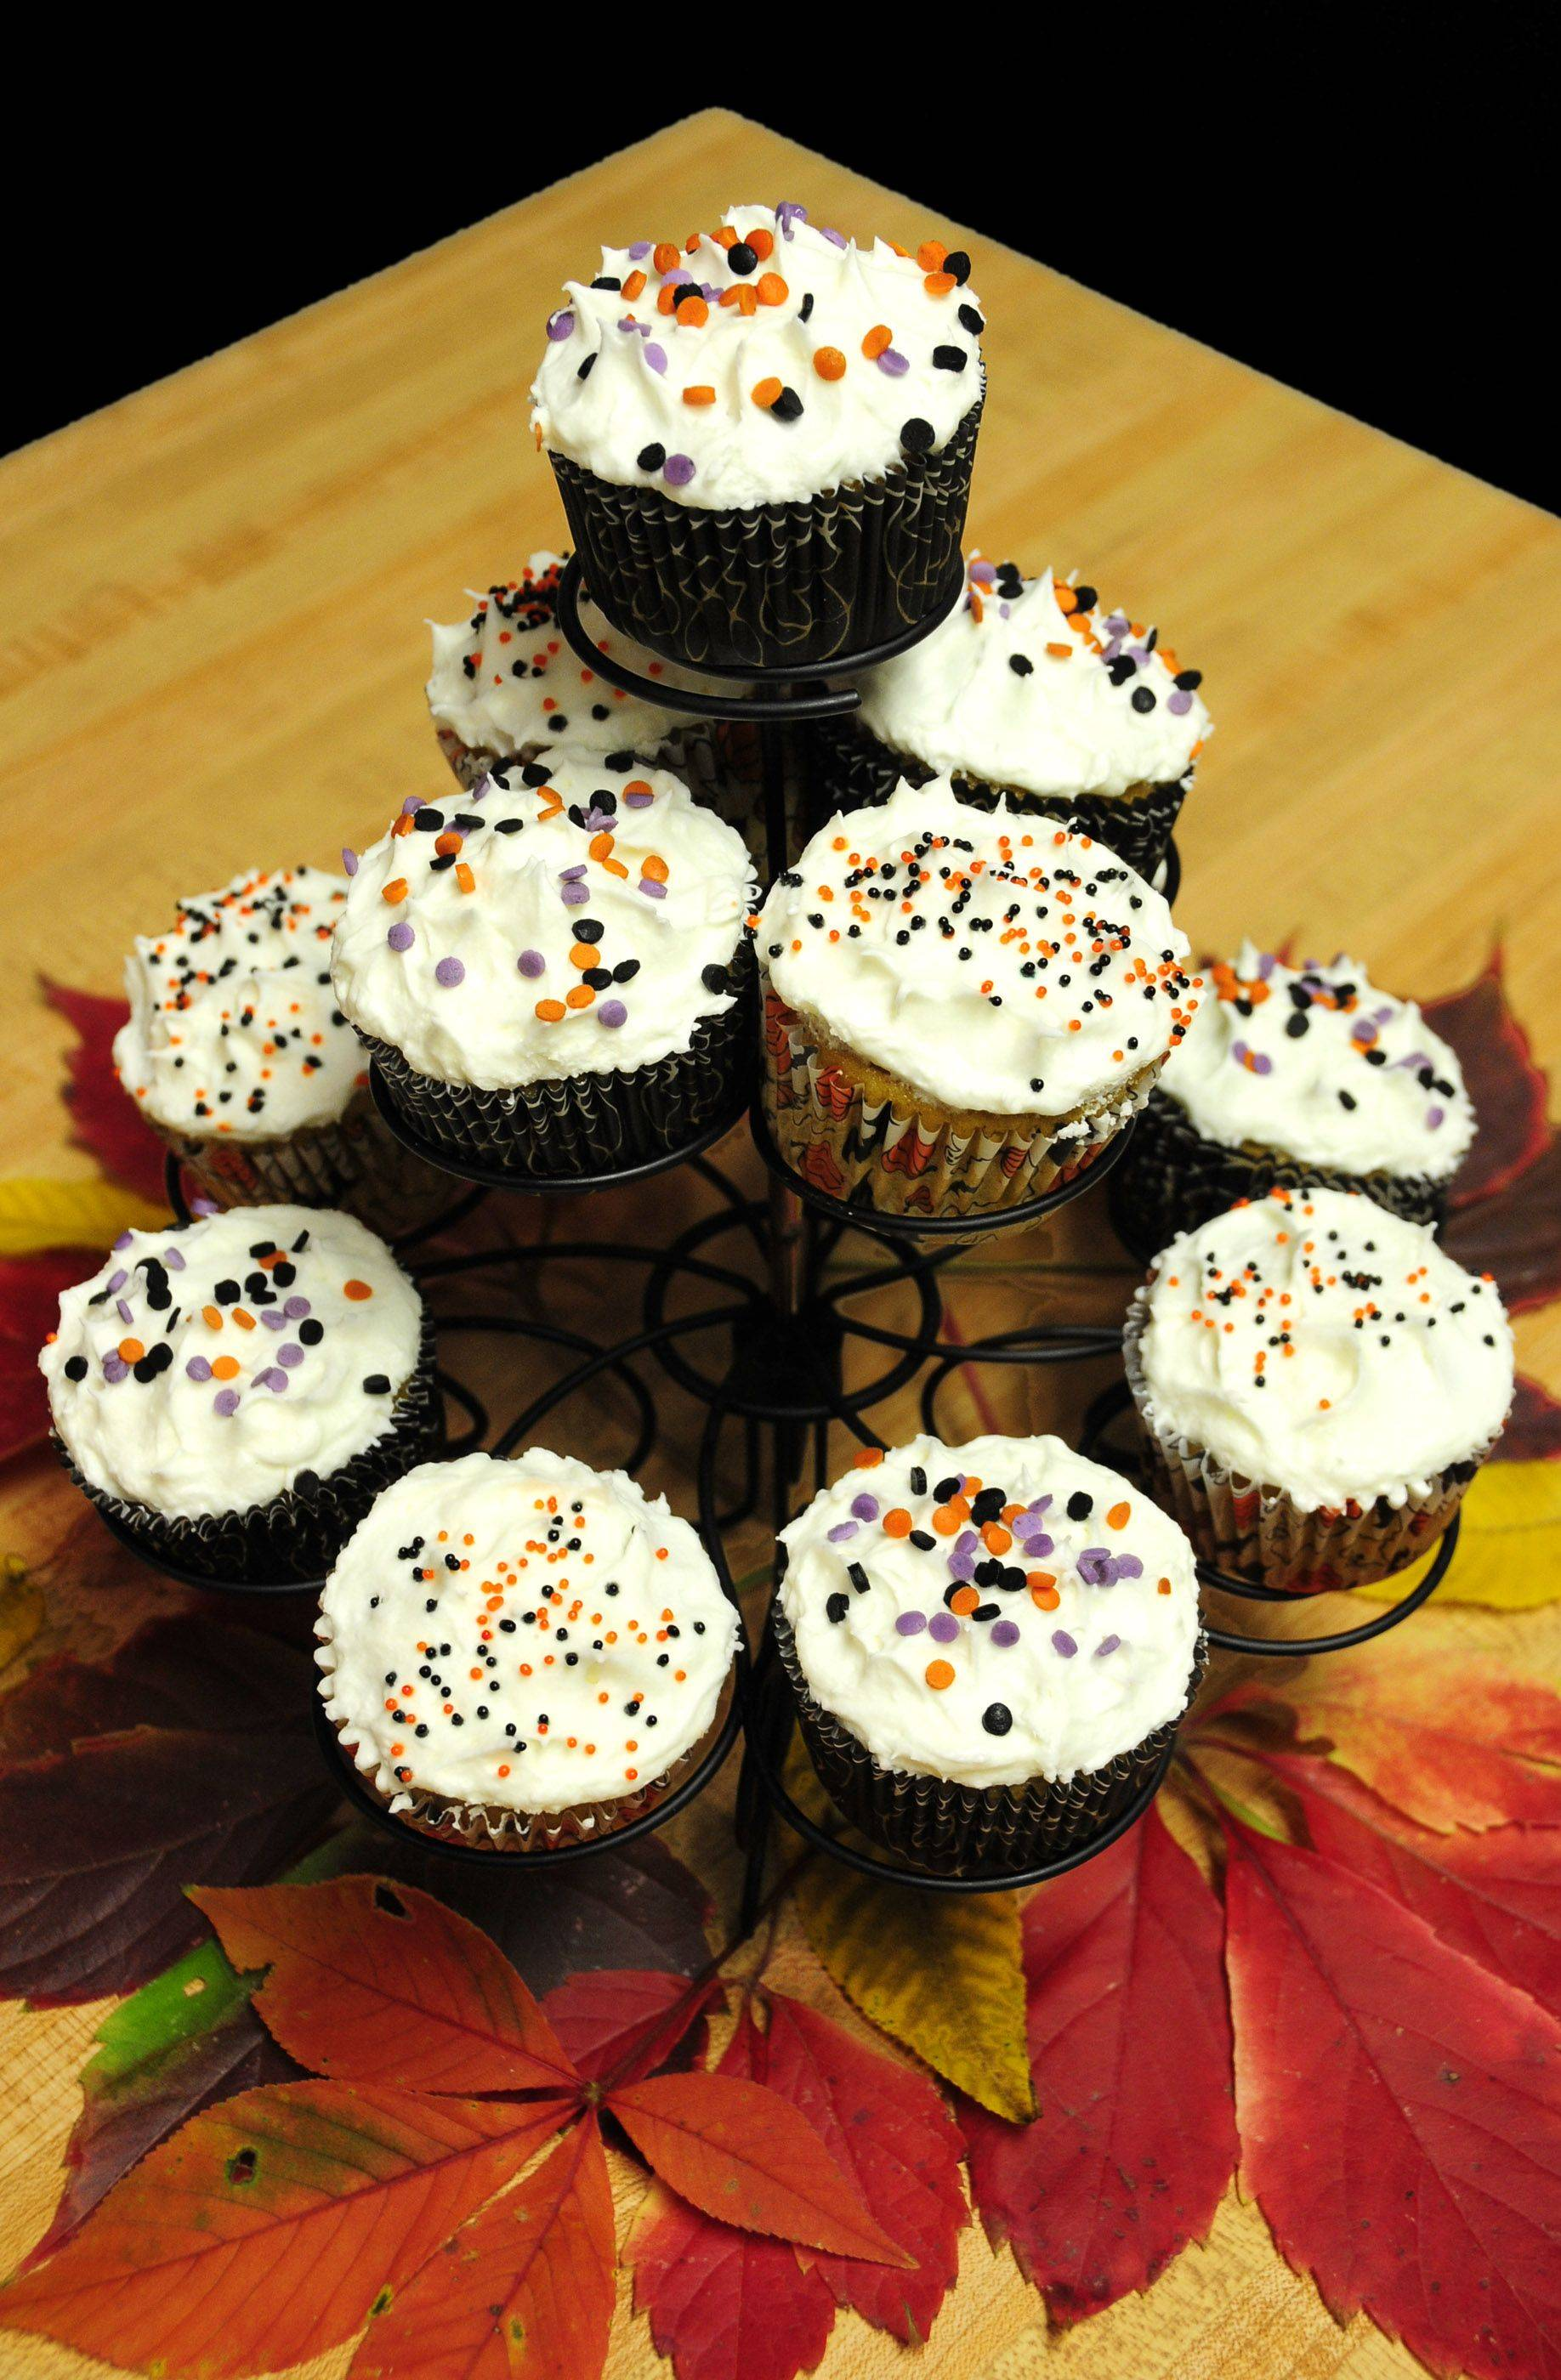 Treat goblins young and old to Halloween Pumpkin Cupcakes.